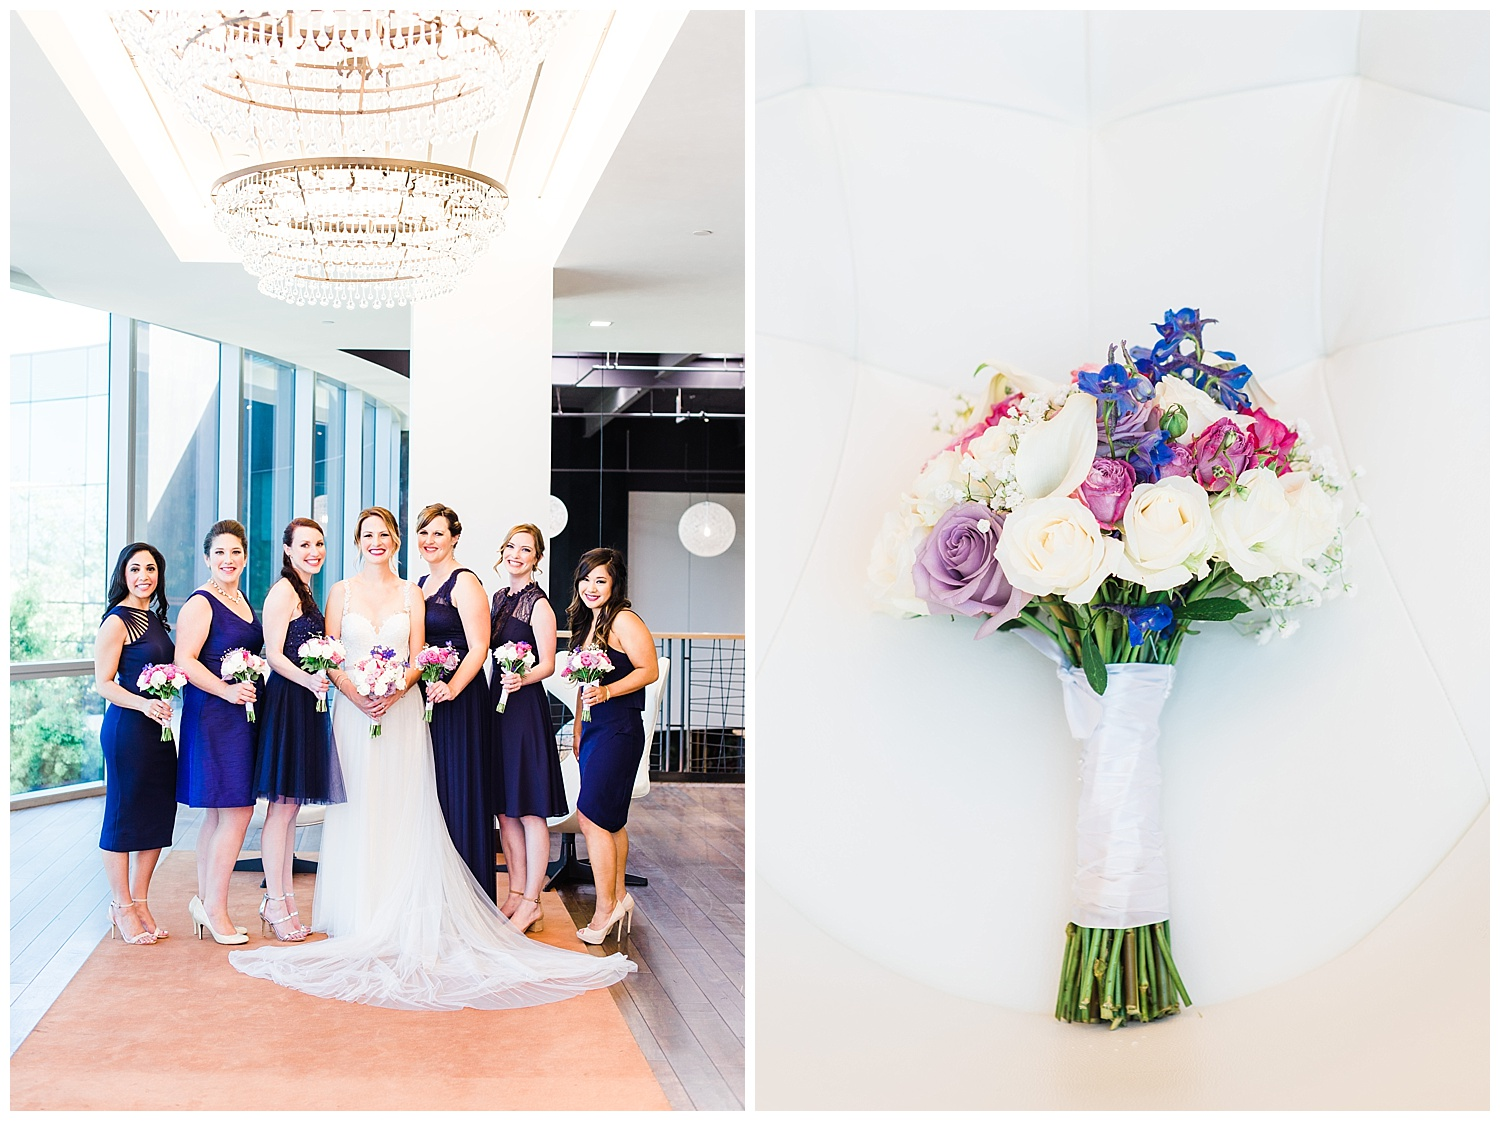 socal-wedding-party-navy-and-pink-details.jpg